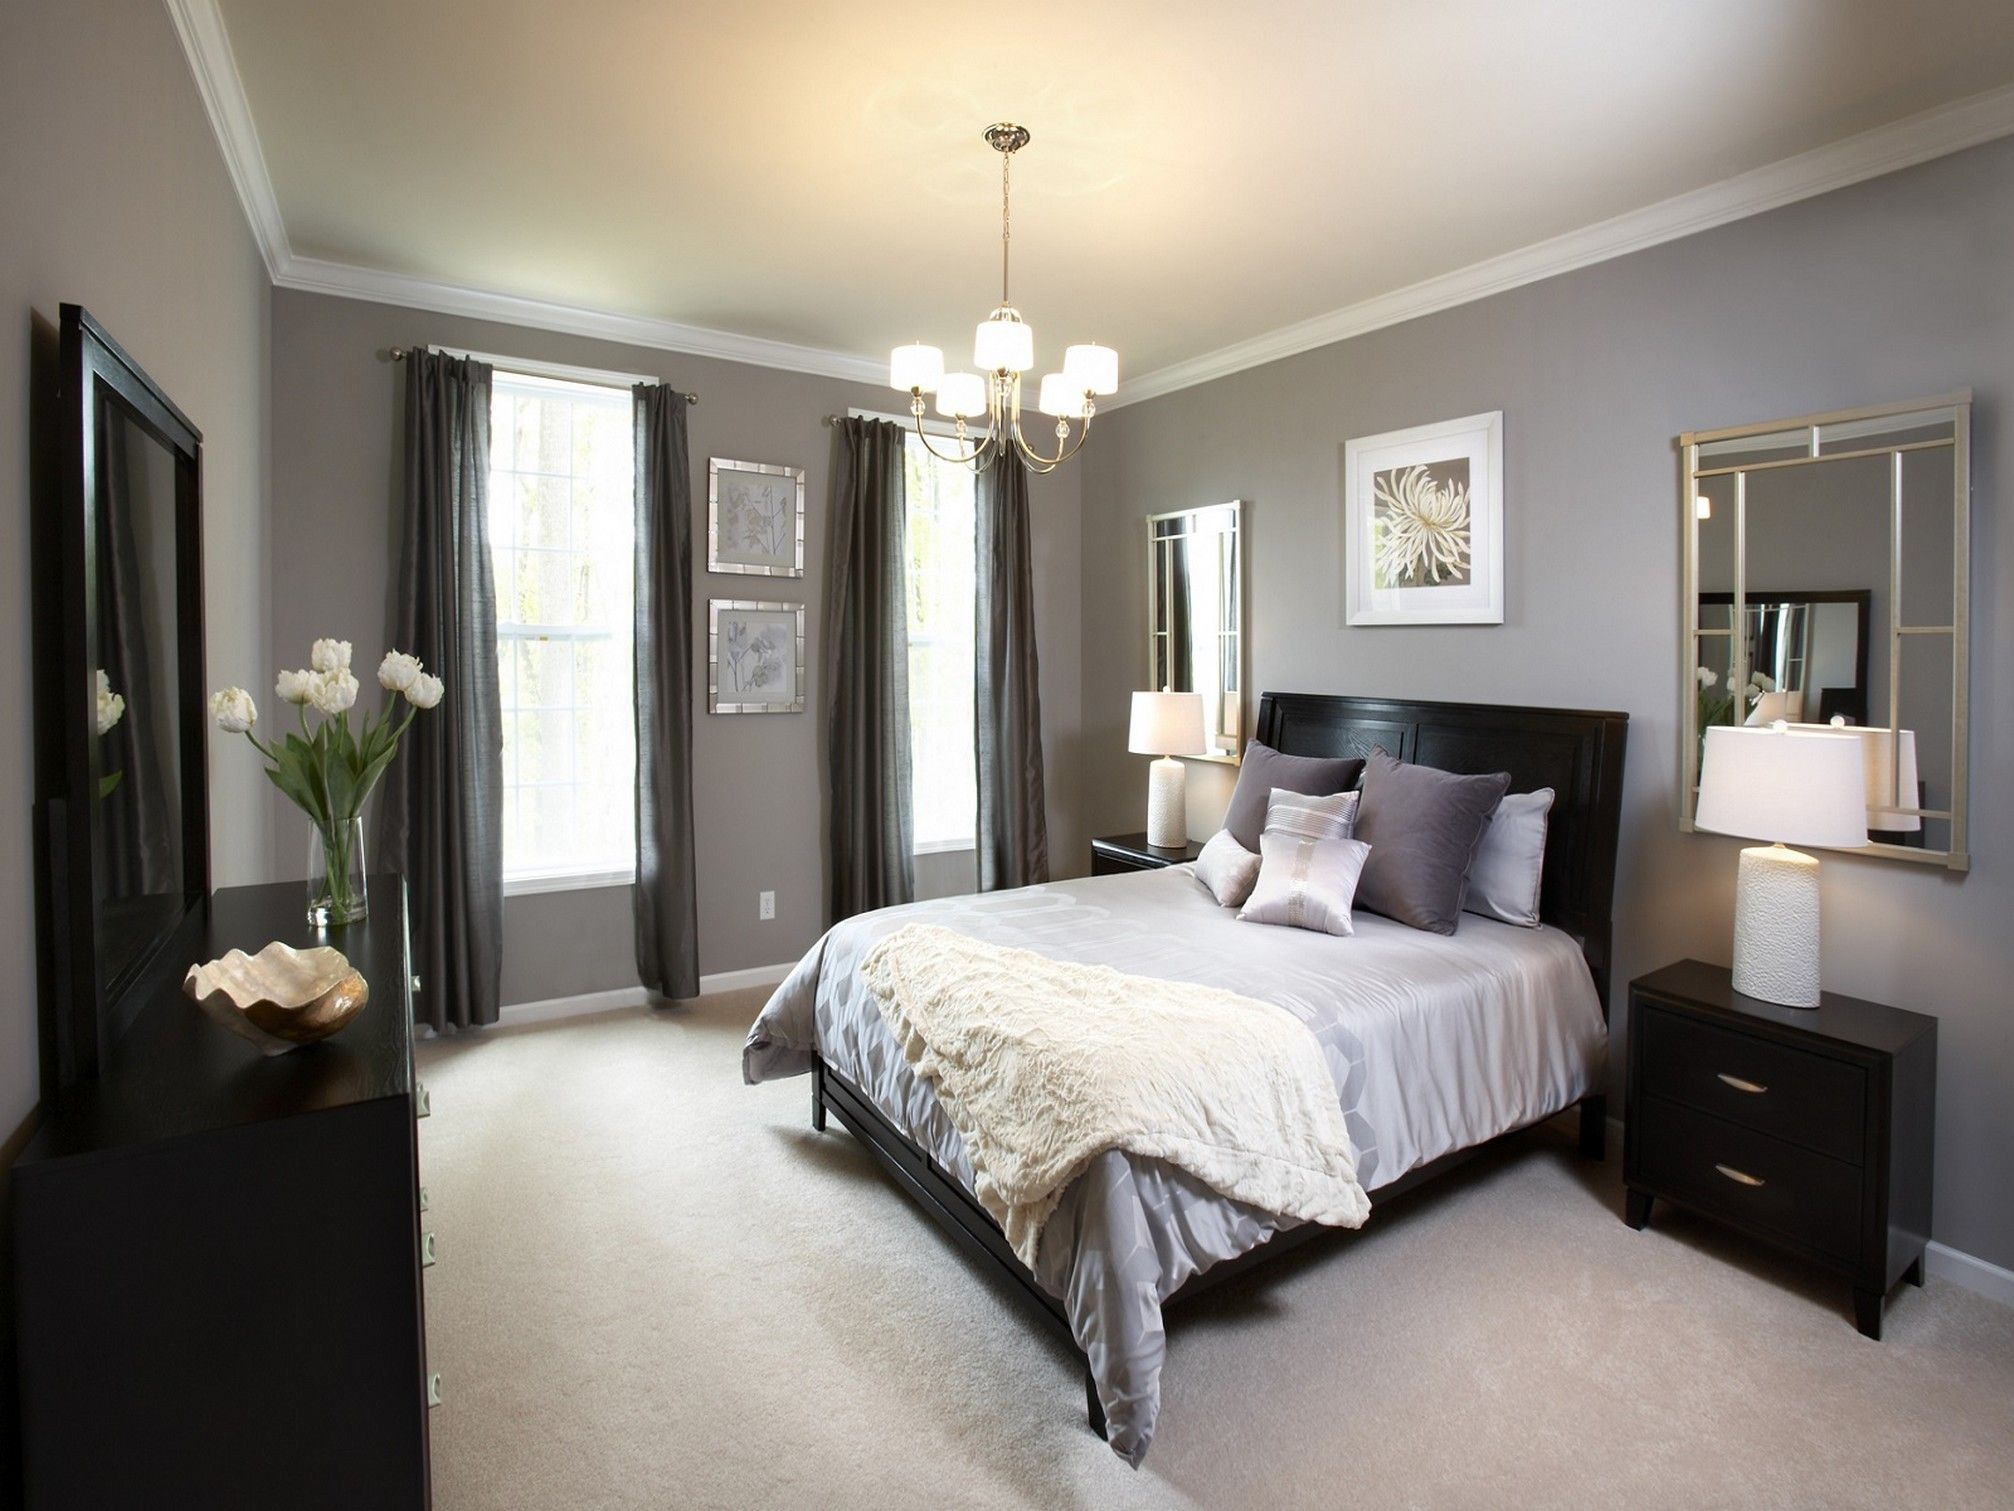 house kimberton master bed room getting the unique accent wall